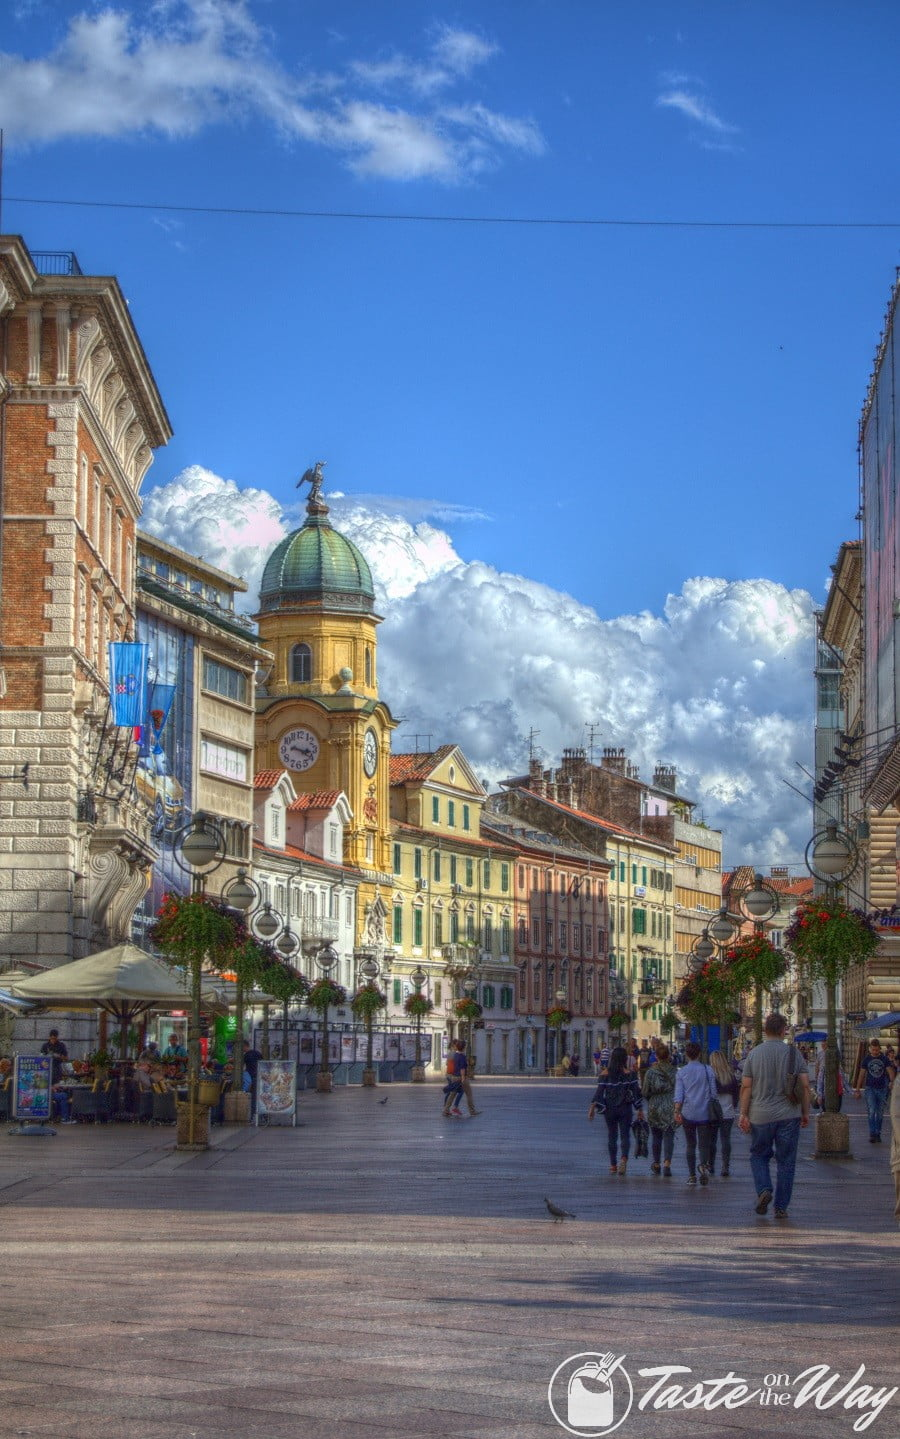 One of the top reason on why you should add #Rijeka to your #Croatia #itinerary is the postcard worthy Clock Tower. Check out for more! #travel #photography @tasteontheway